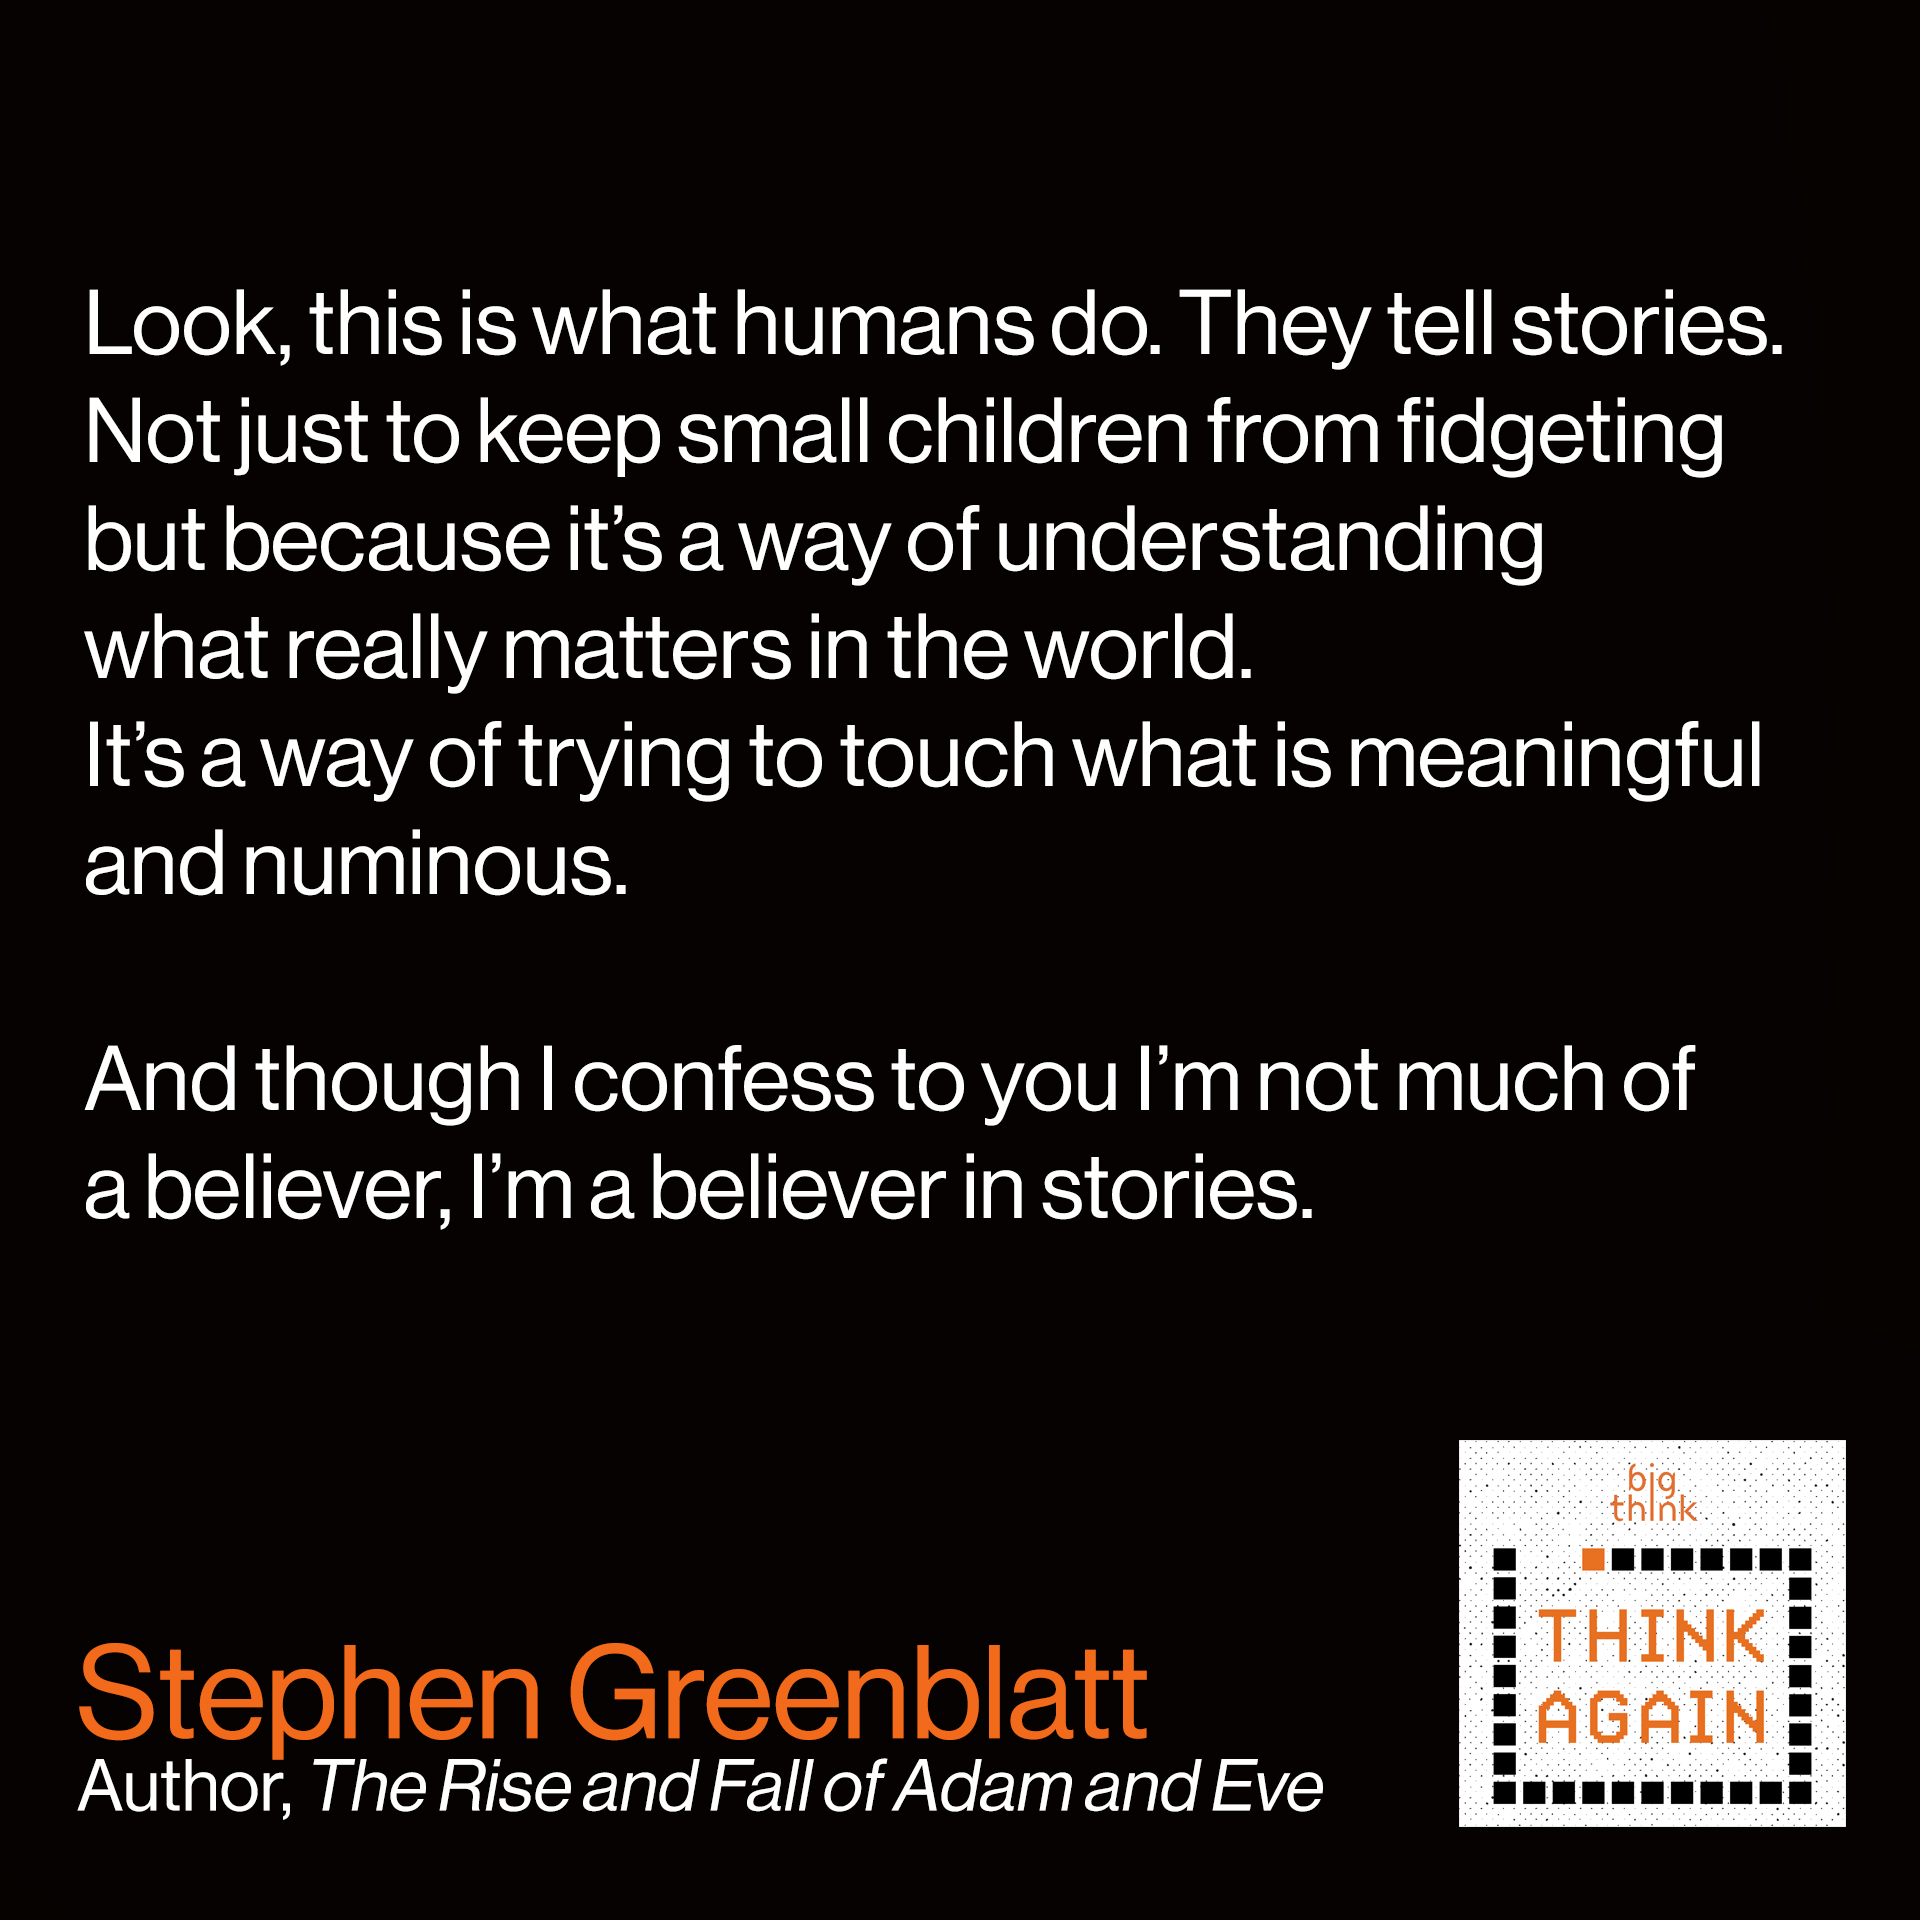 Stephen Greenblatt quote: Look, this is what humans do. They tell stories.  Not just to keep small children from fidgeting but  because it's a way of understanding what really  matters in the world. It's a way of trying to touch  what is meaningful and numinous.  And though I confess to you, I'm not much of a believer,  I'm a believer in stories.